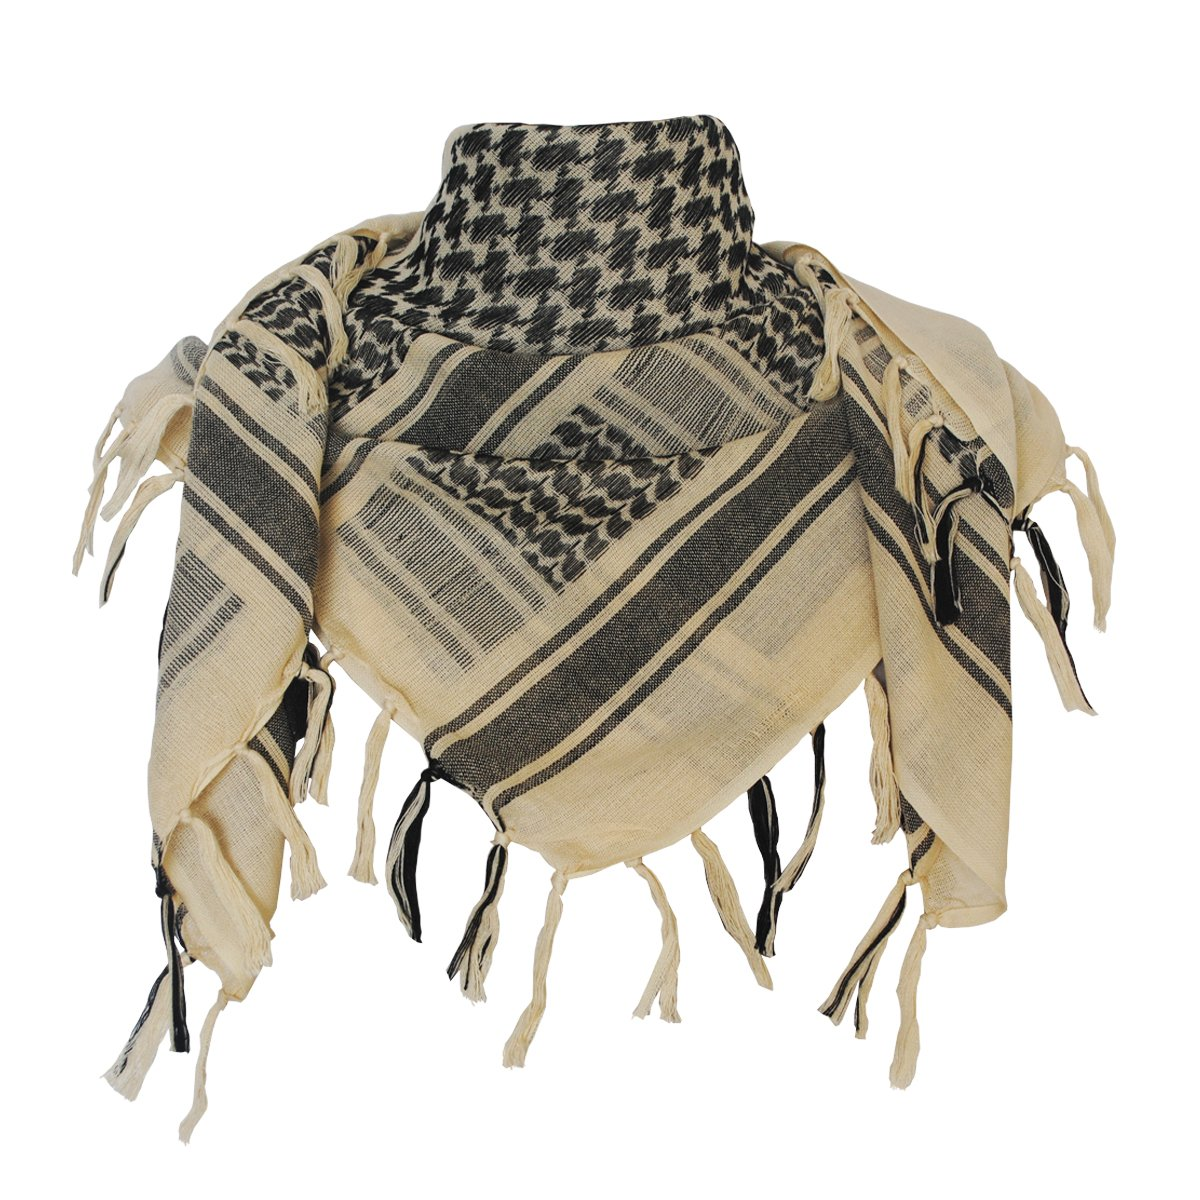 Explore Land 100% Cotton Military Shemagh Tactical Desert Keffiyeh Scarf Wrap (Black and Green)